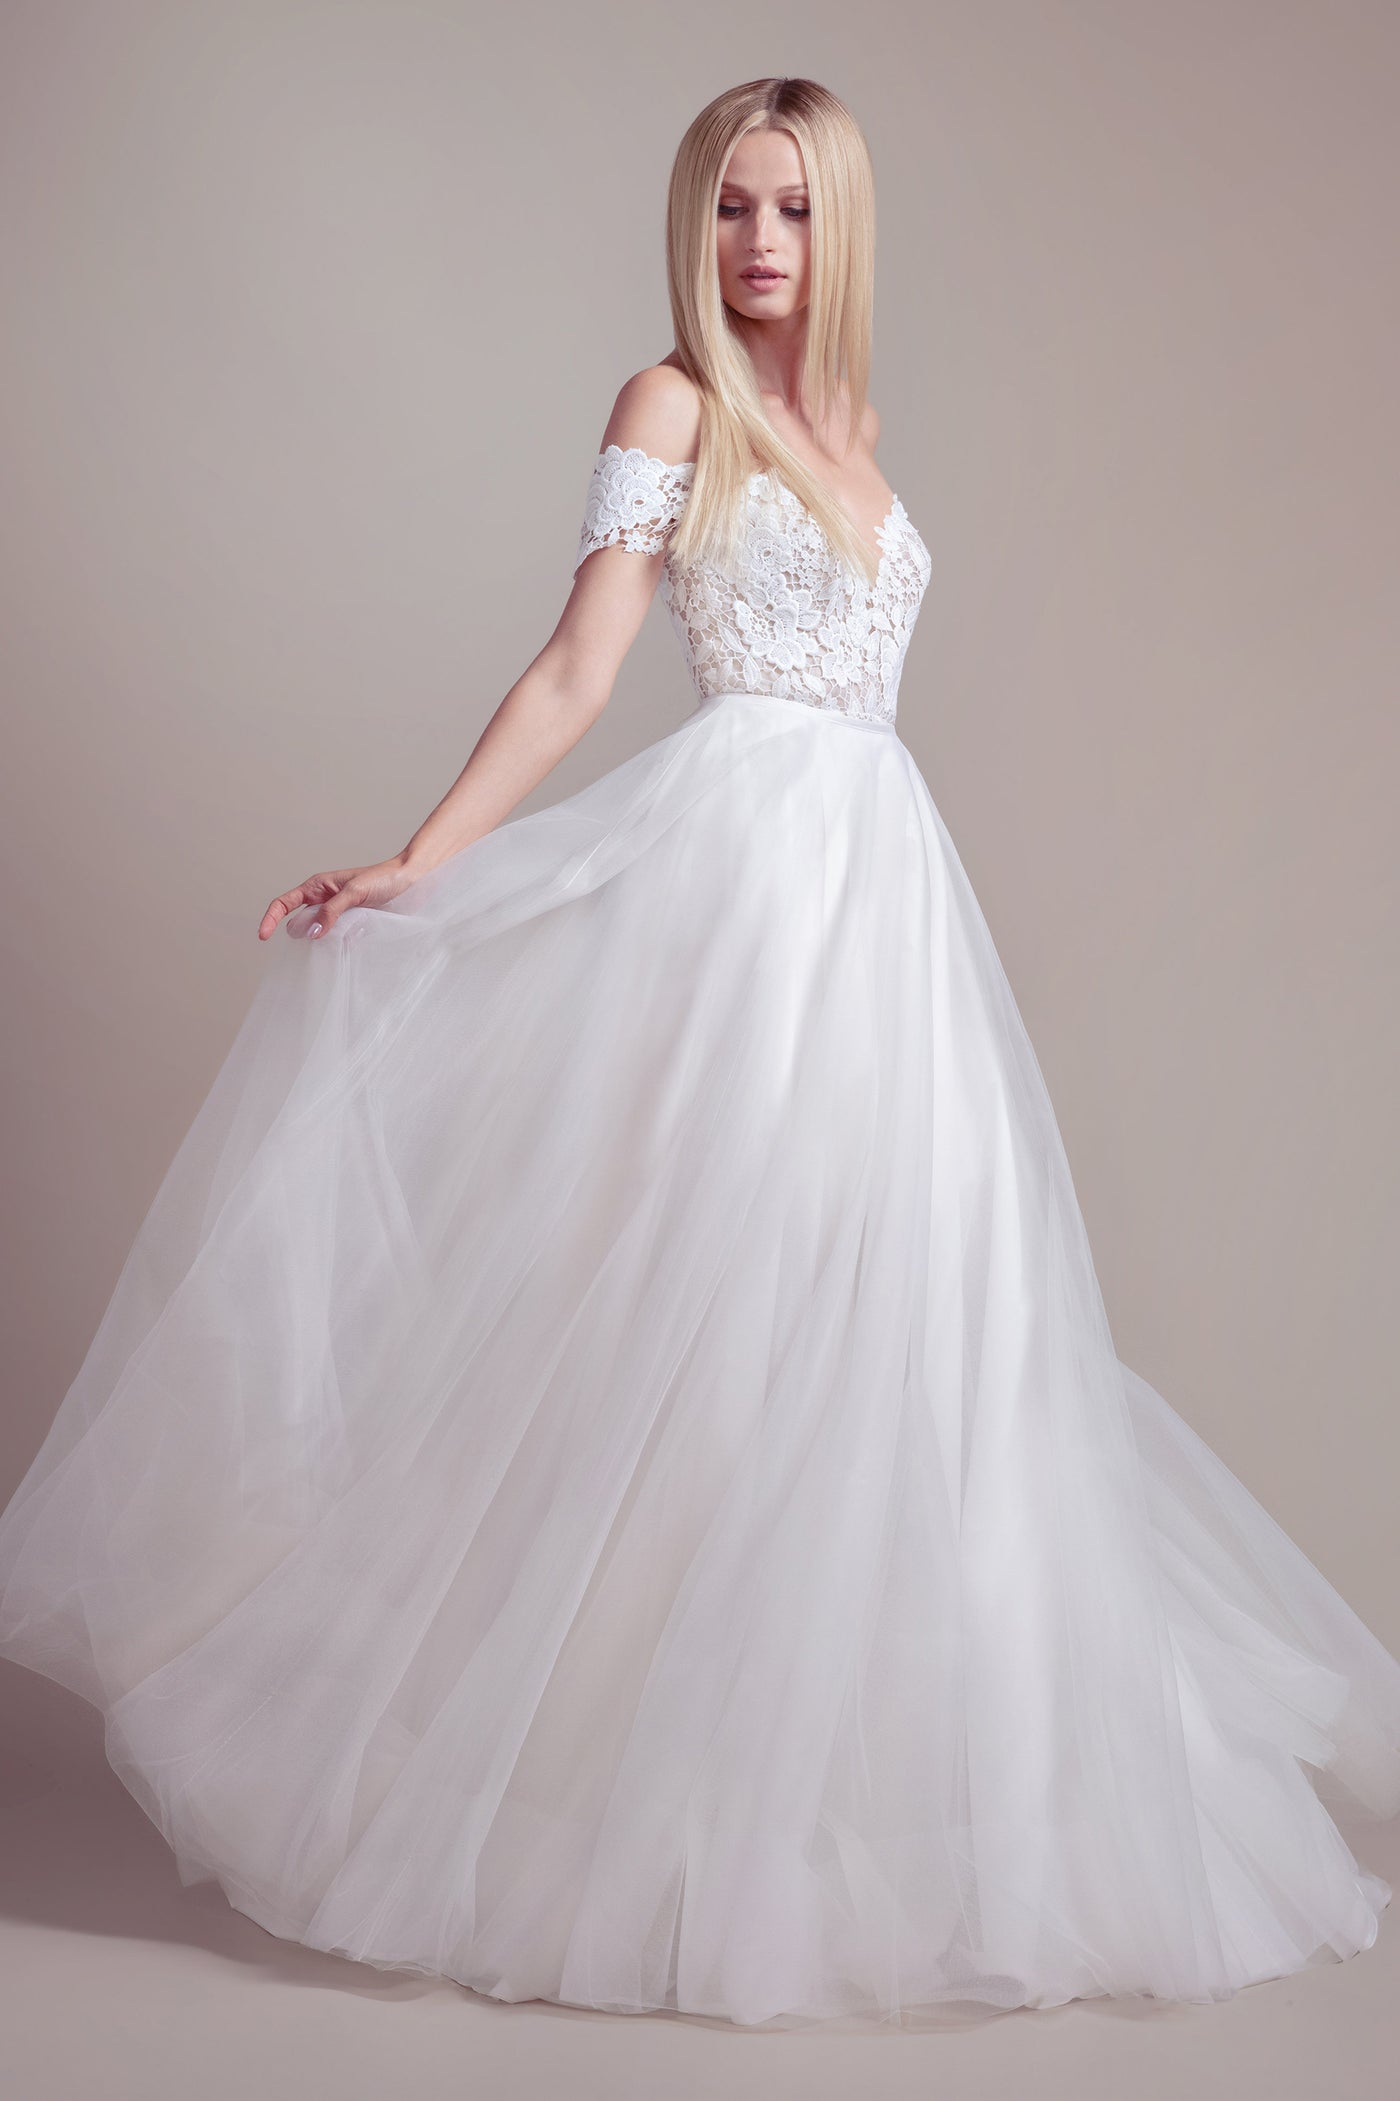 Jojo - Coming Soon, Gown, Blush by Hayley Paige - Eternal Bridal